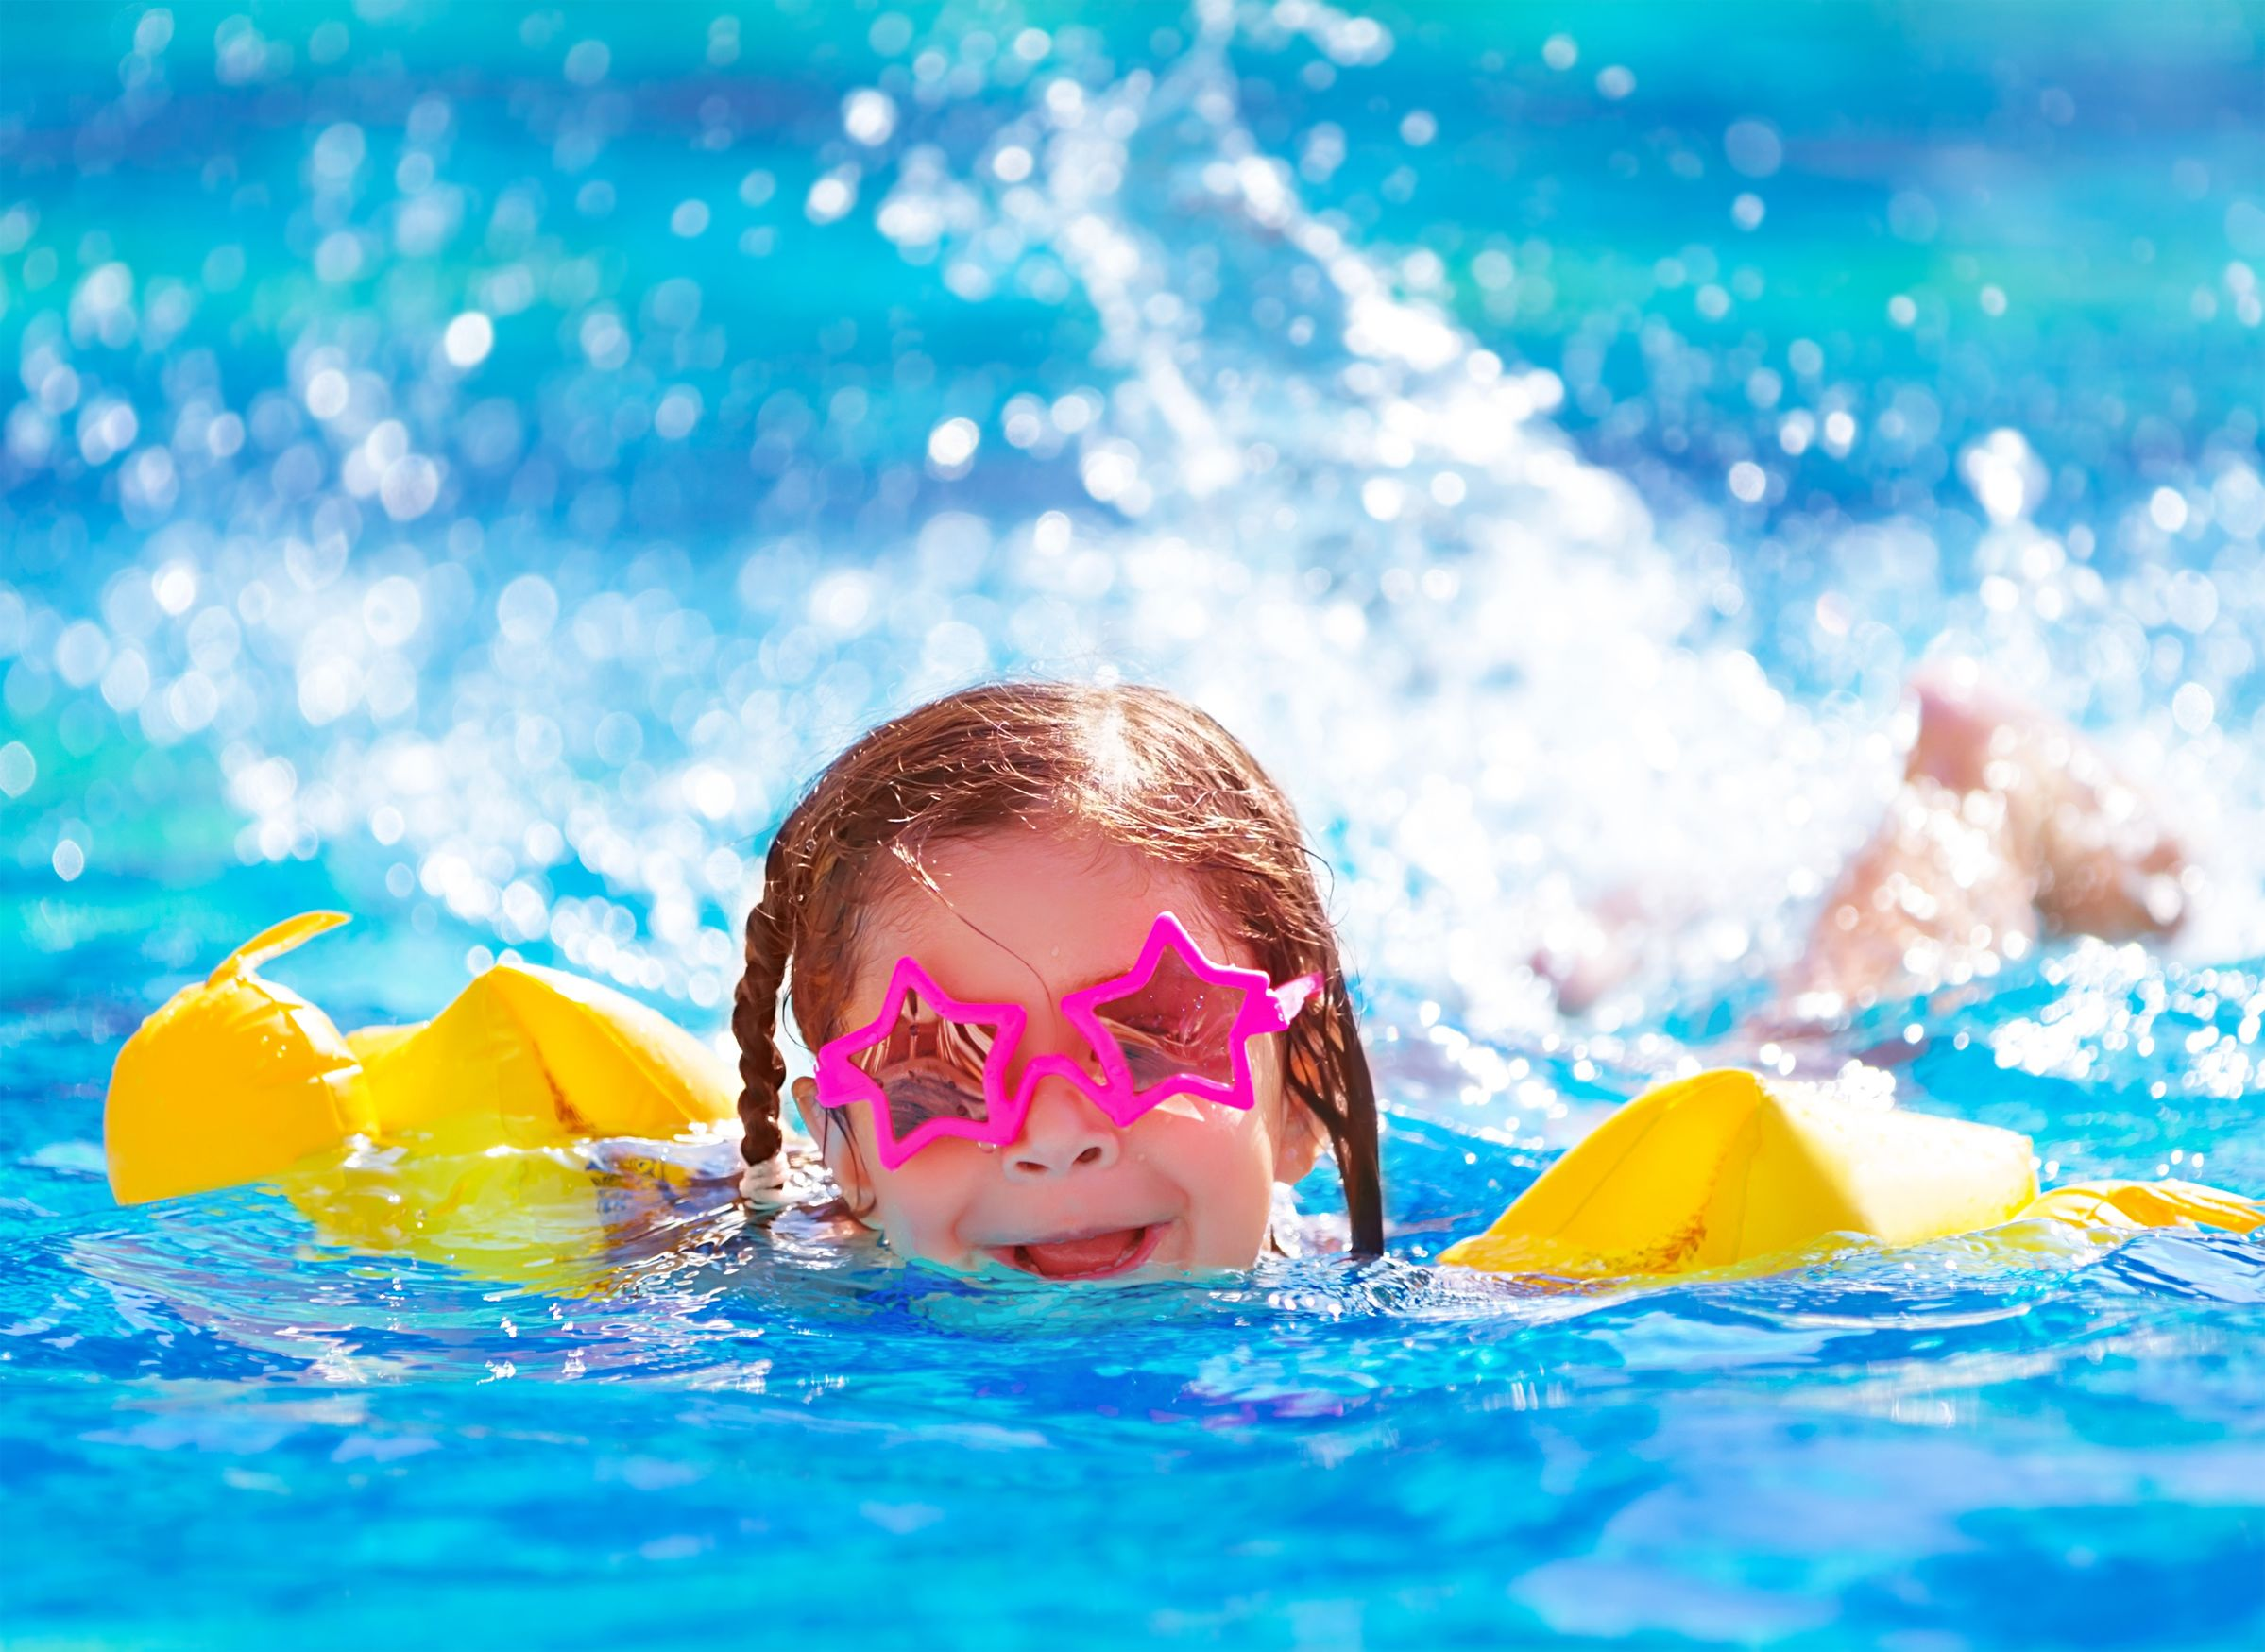 20772618 - closeup portrait of cute little arabic girl swimming in the pool, happy child having fun in water, beach resort, summer vacation and holidays concept